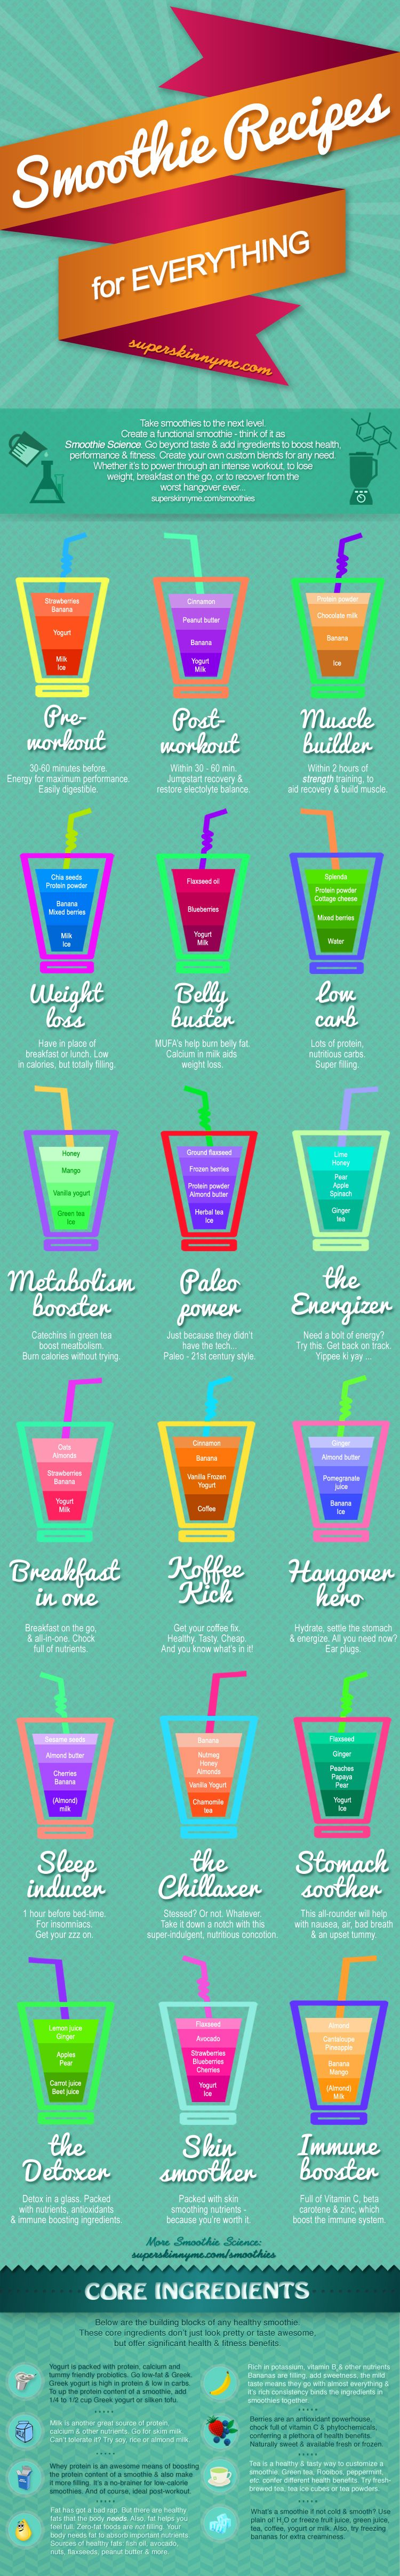 Smoothies can be modified to suit your needs. Do you want to lose weight, build muscle, or get to sleep? Do you need a pick-me up or want to wind down? - - - Check out these quick and easy smoothie recipes for every need, for every occasion. #Fitness Matters